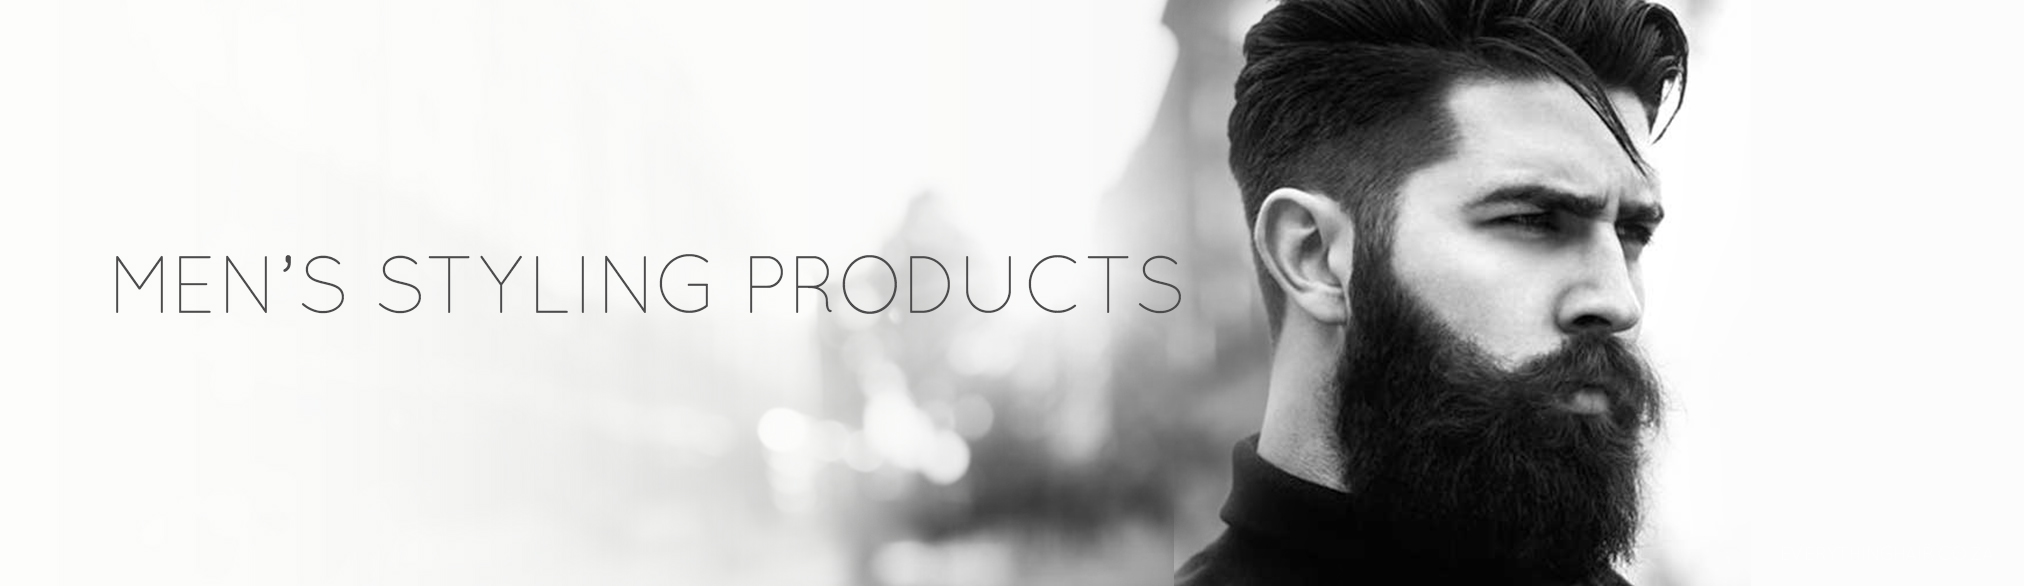 Styling Products for Men